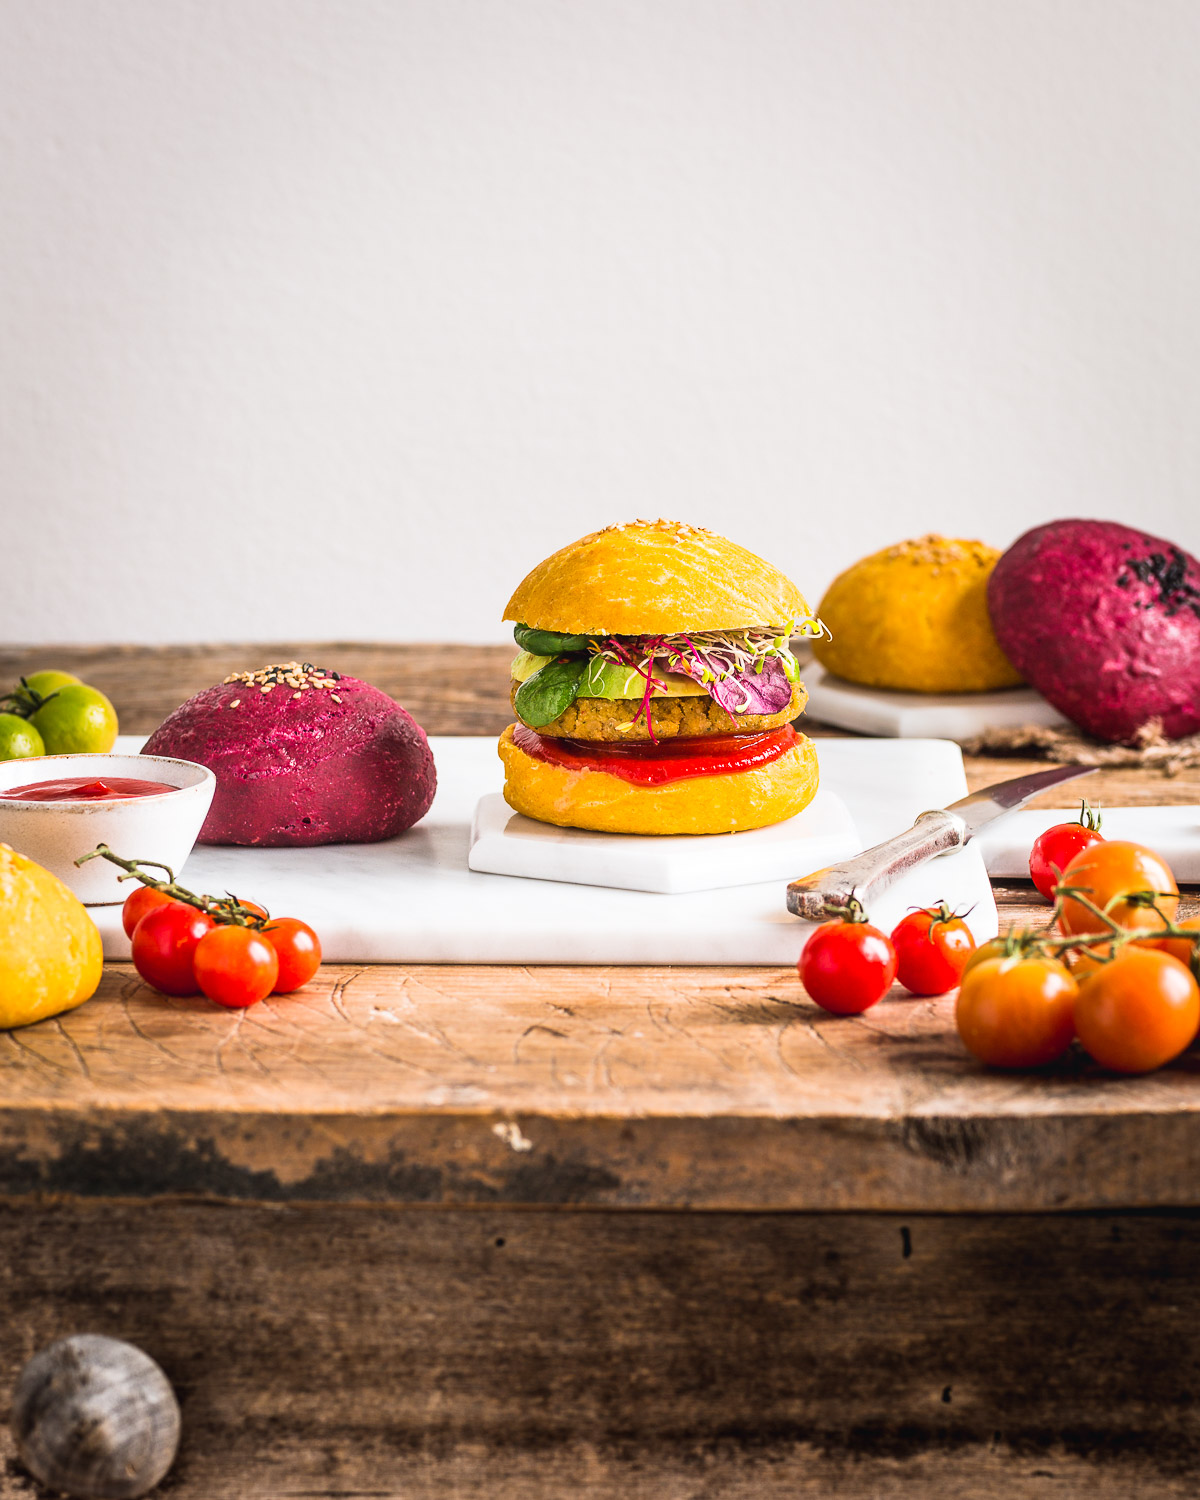 Healthy BEETS and CARROT VEGAN BURGER BUNS recipe for parties PANINI VEGANI per BURGER al FARRO fatti in casa sani con barbabietola e carota per feste